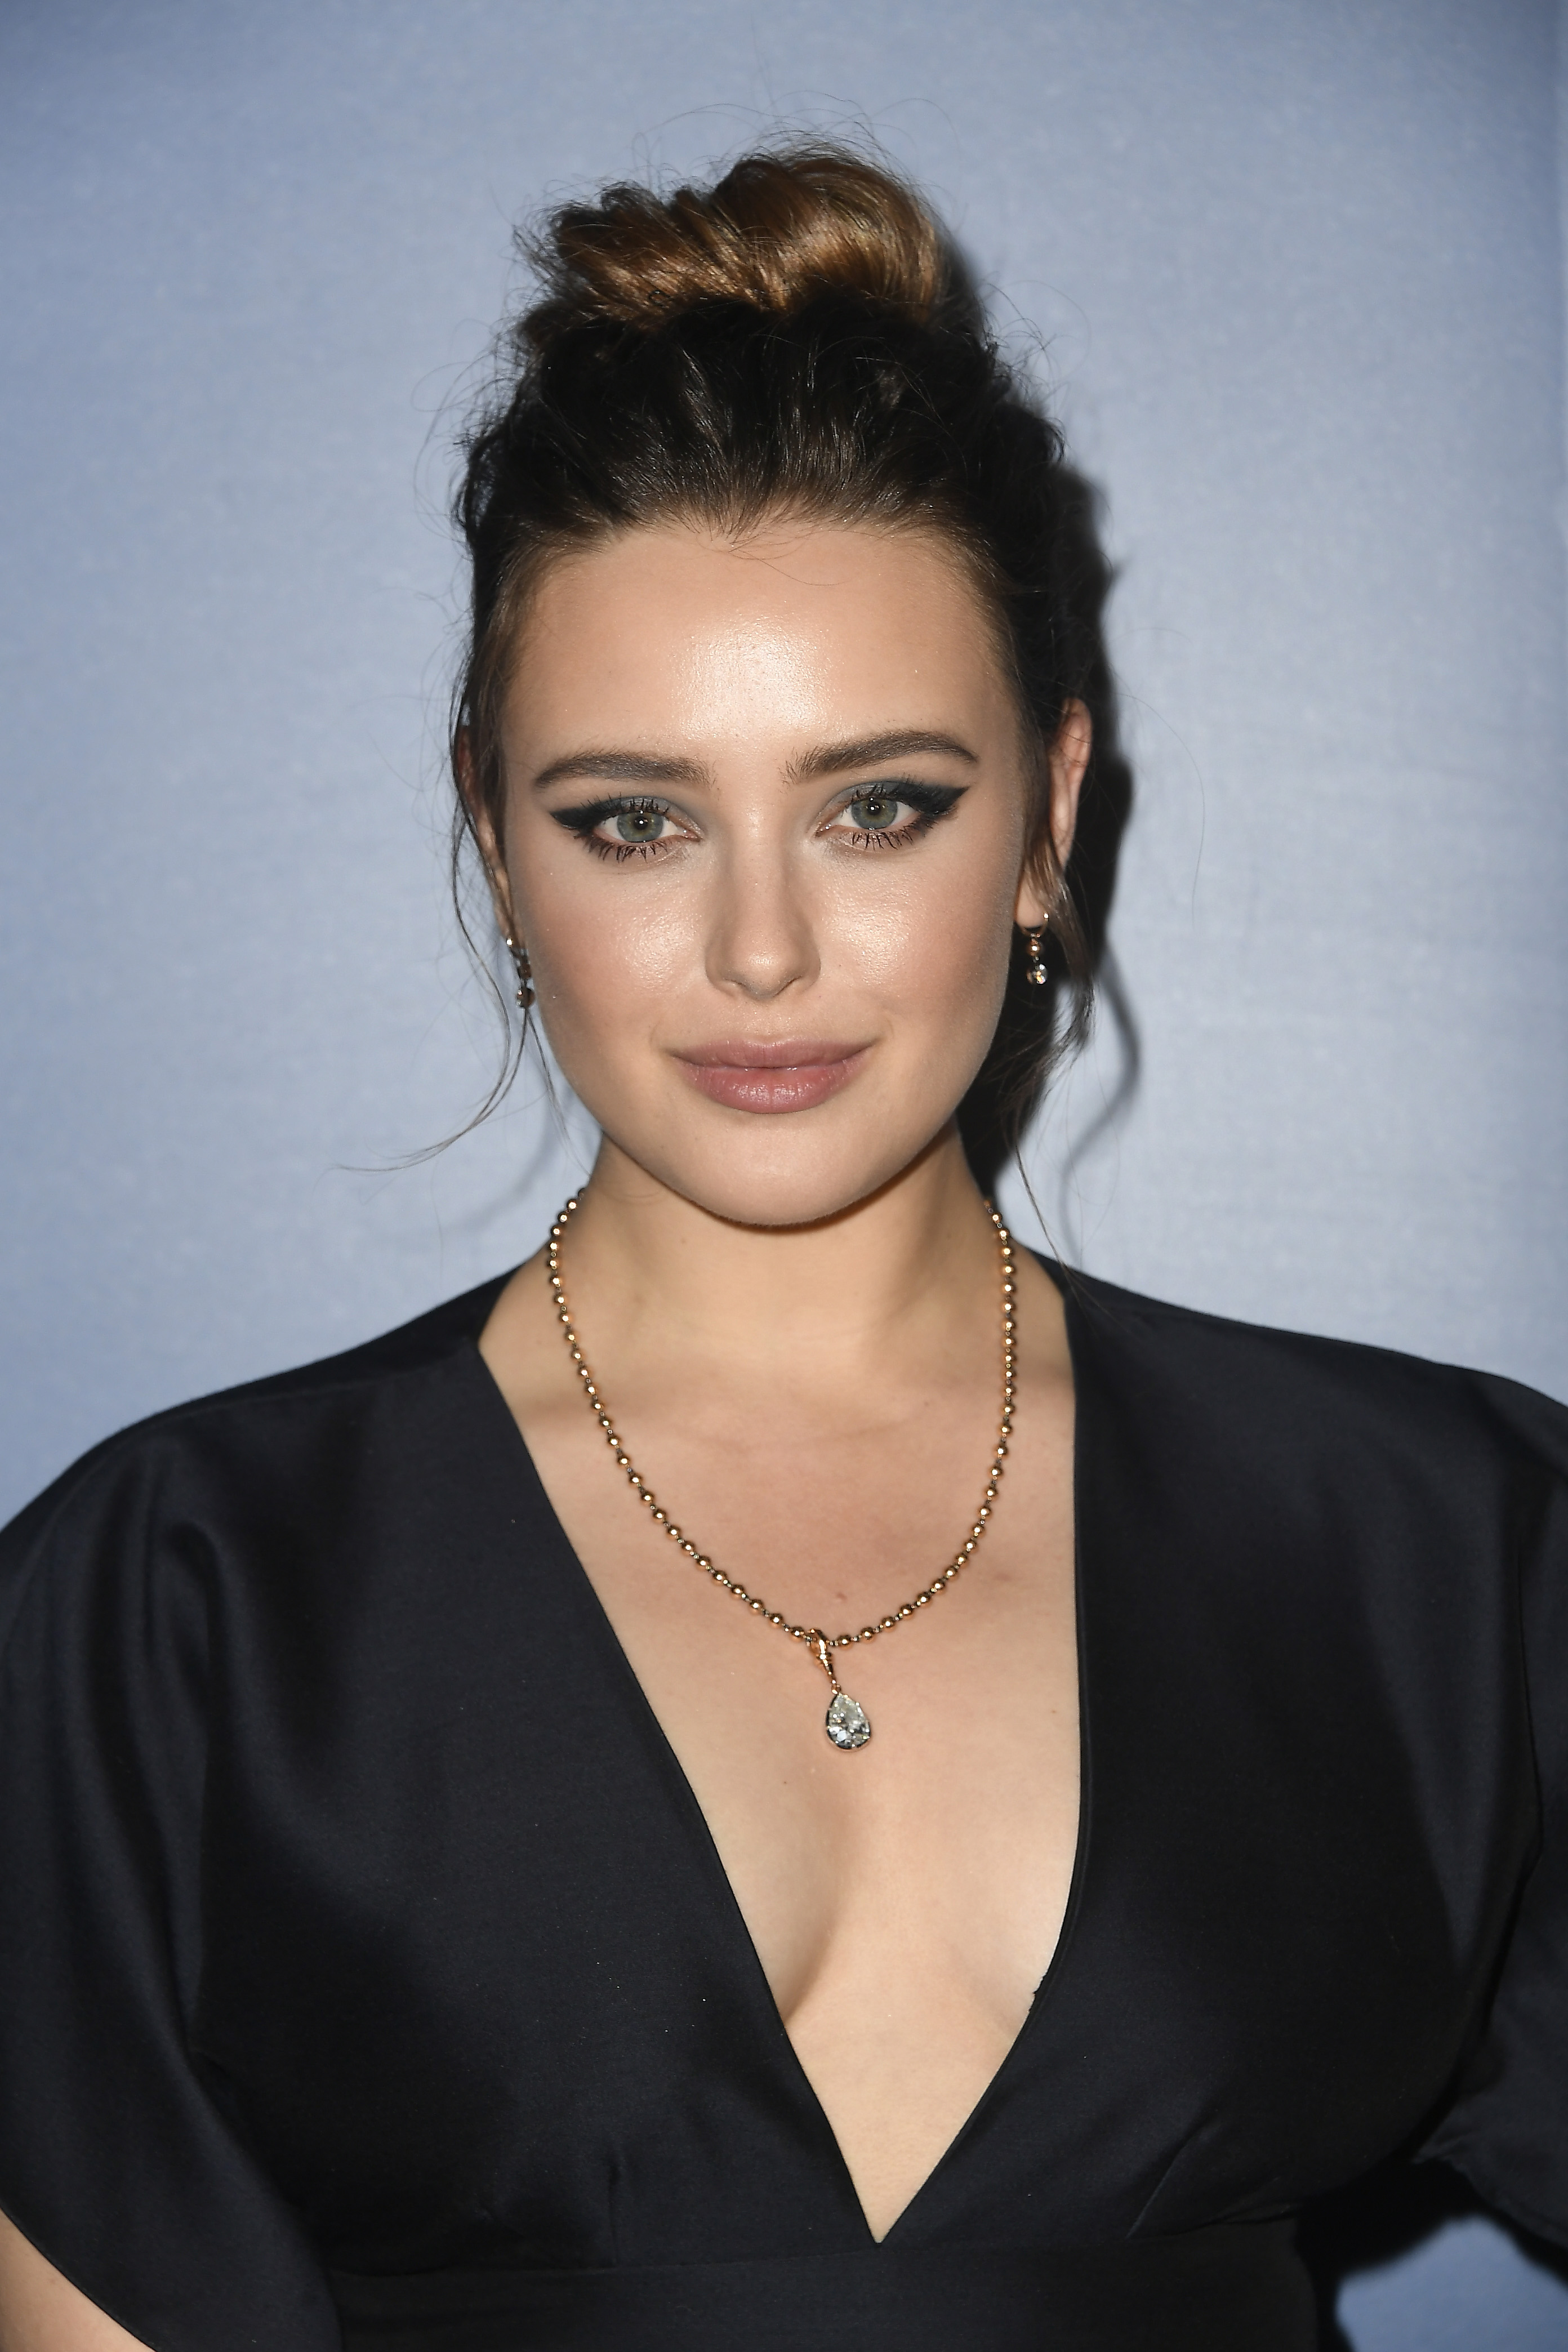 Katherine Langford on her Avengers: Endgame deleted scene: Robert Downey Jr was wonderful to work with